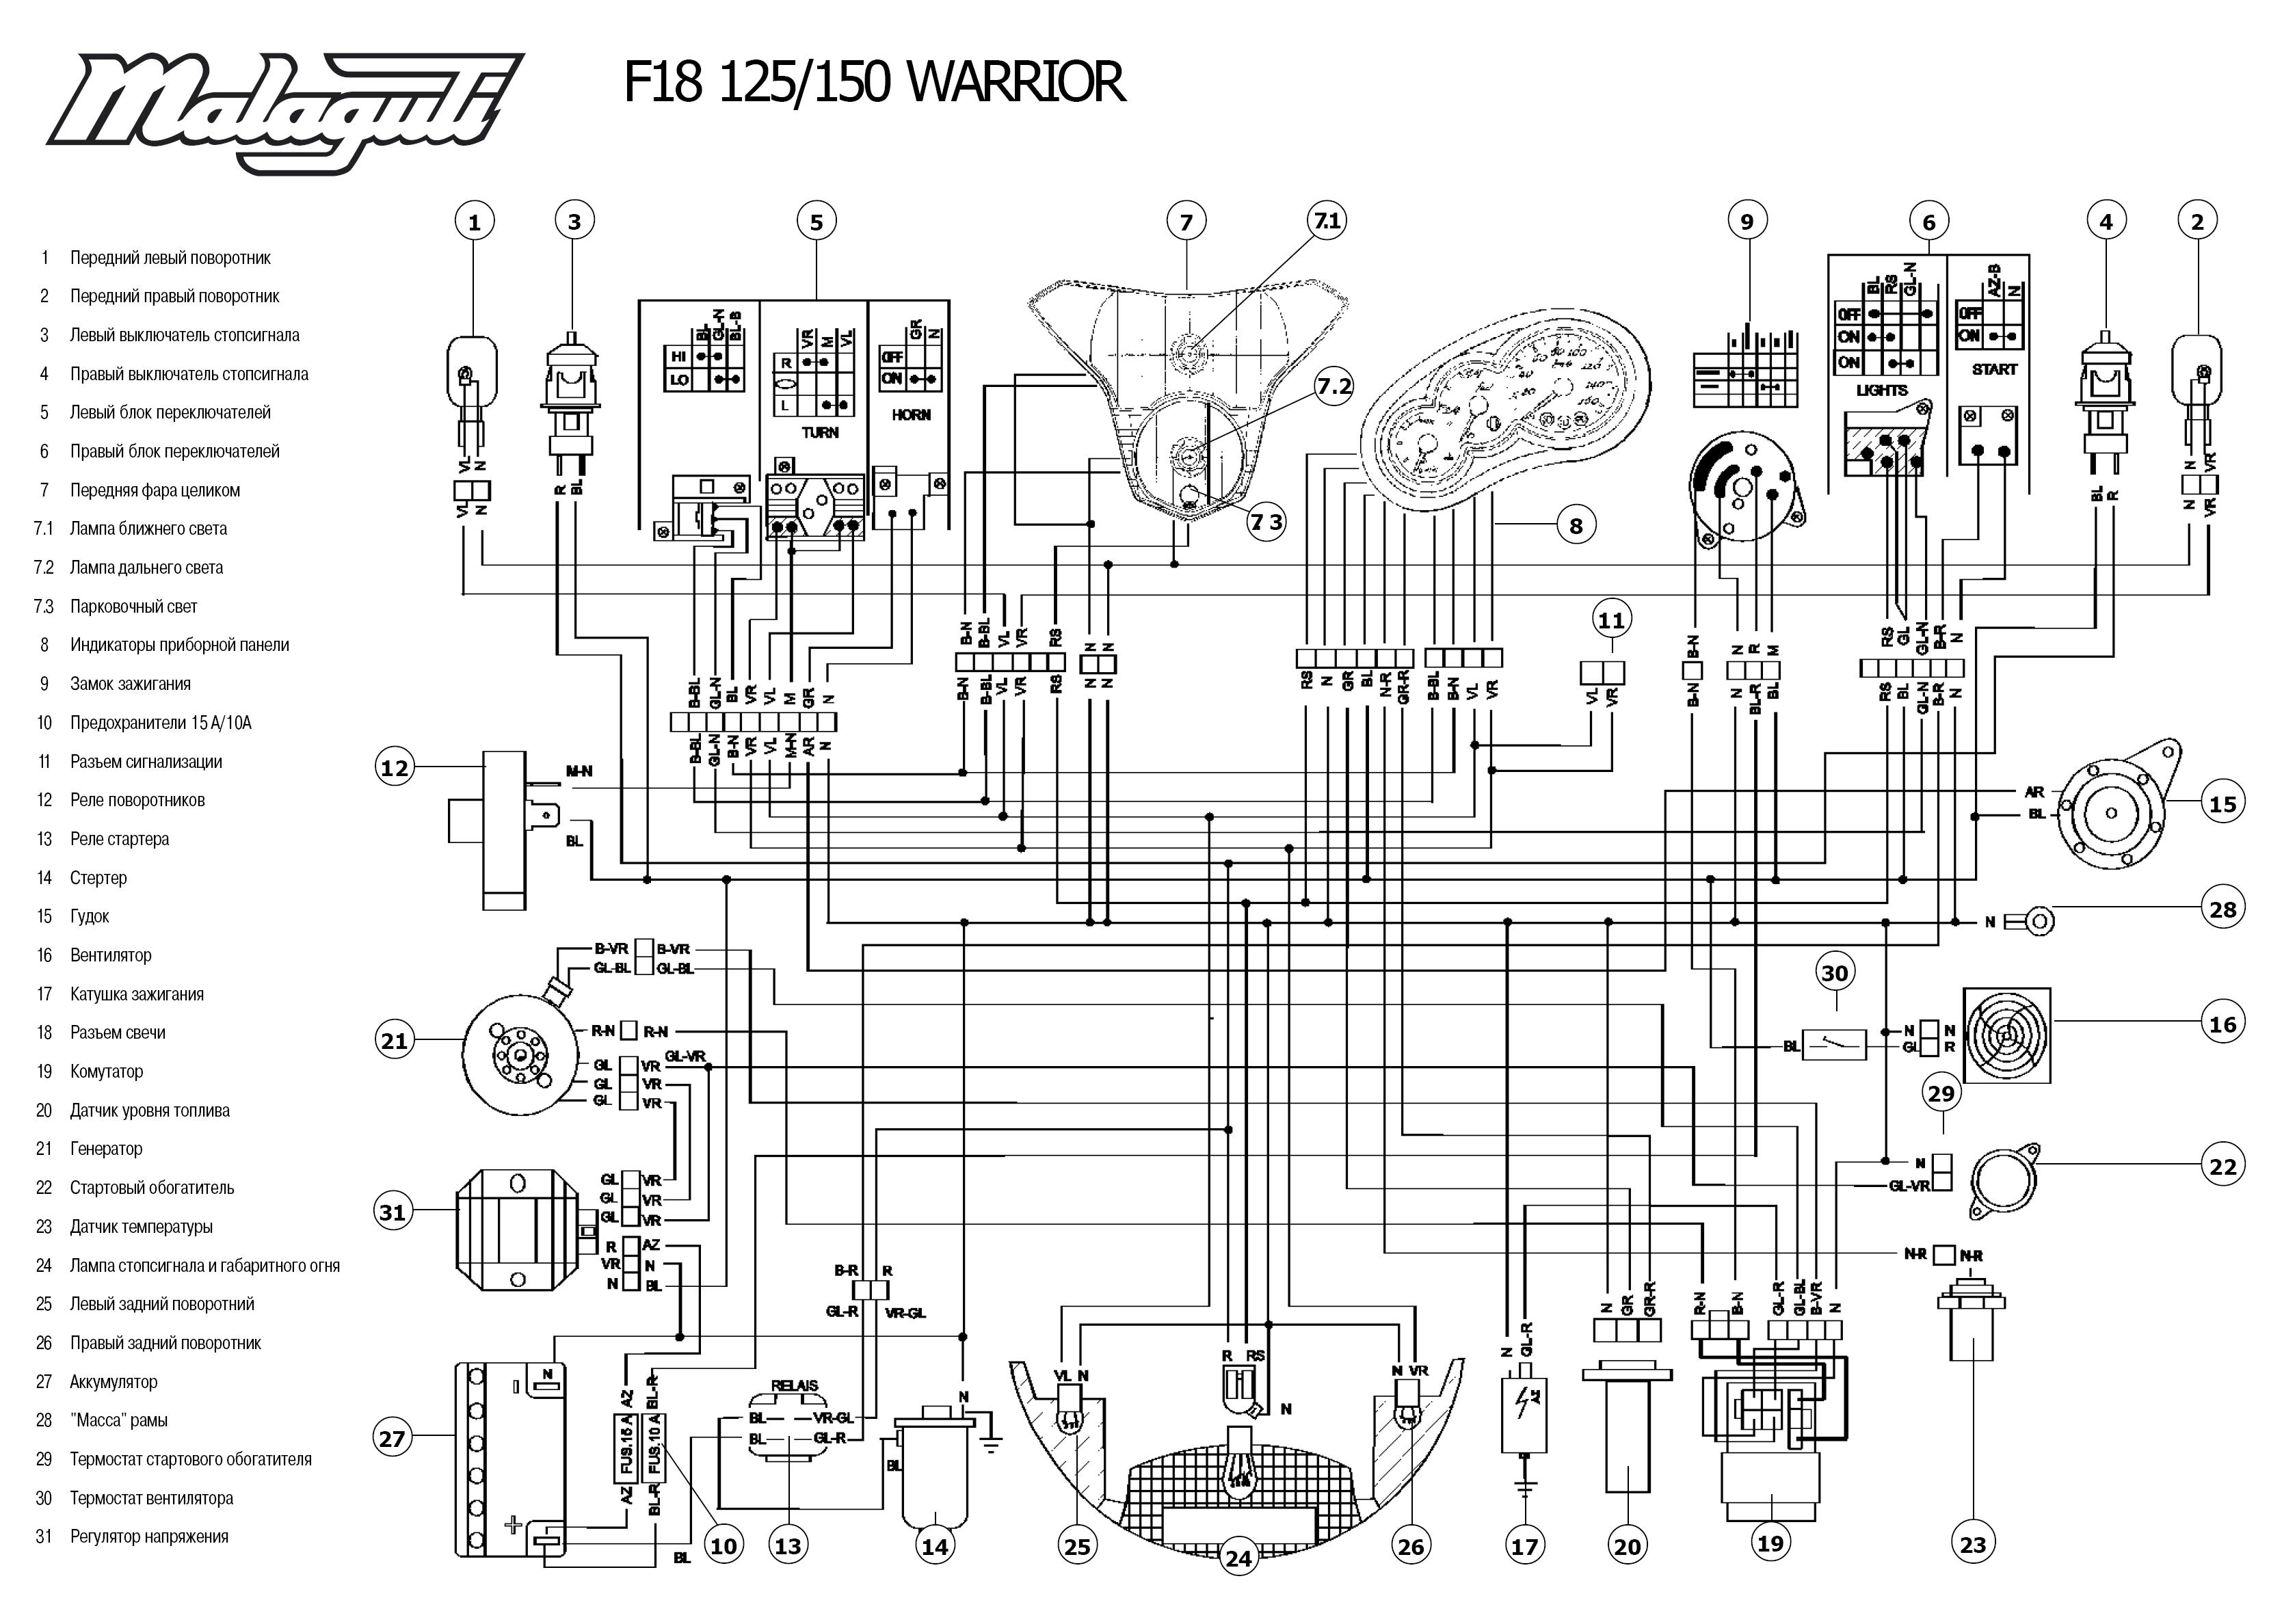 Schema Elettrico Phantom F12 : Malaguti motorcycle manuals pdf wiring diagrams fault